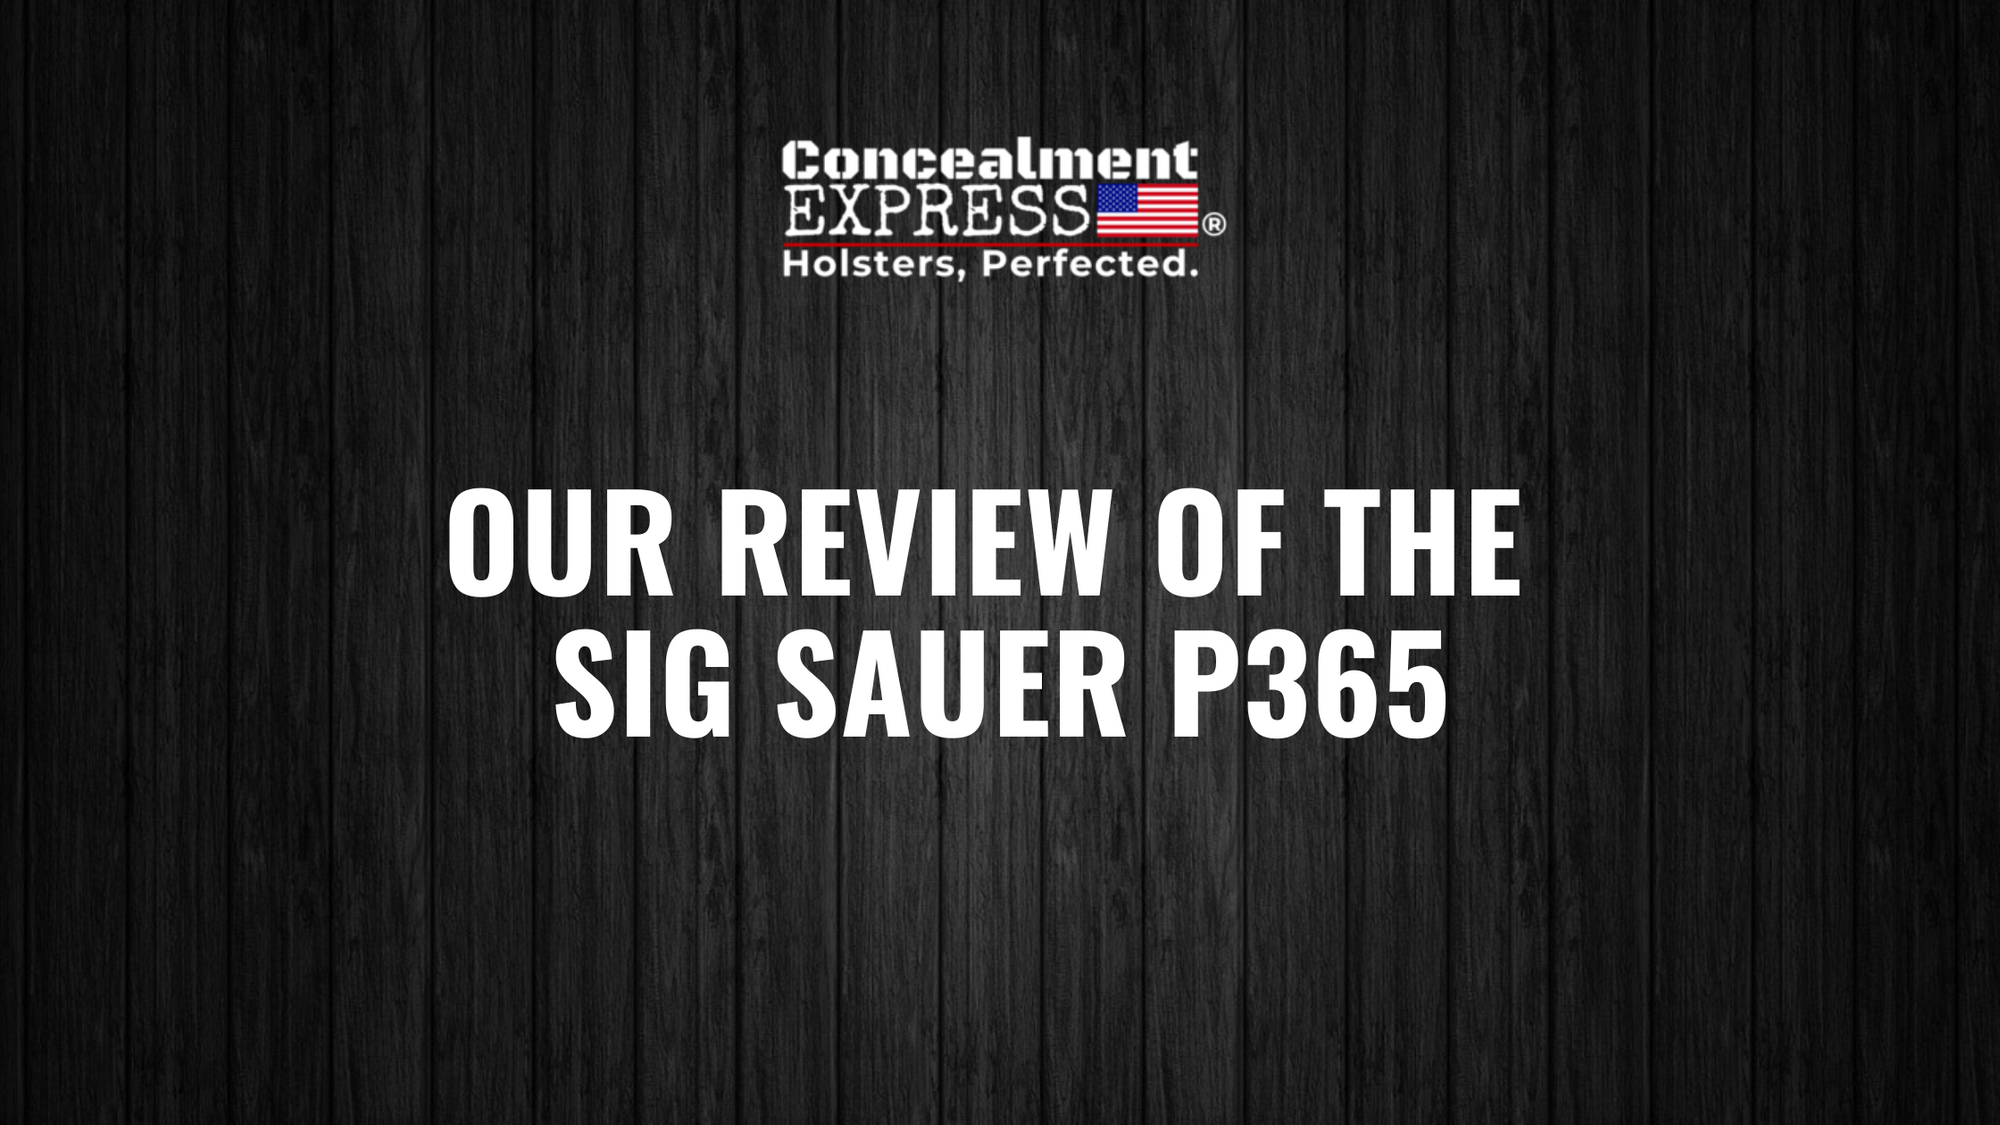 Our Review of the Sig Sauer P365